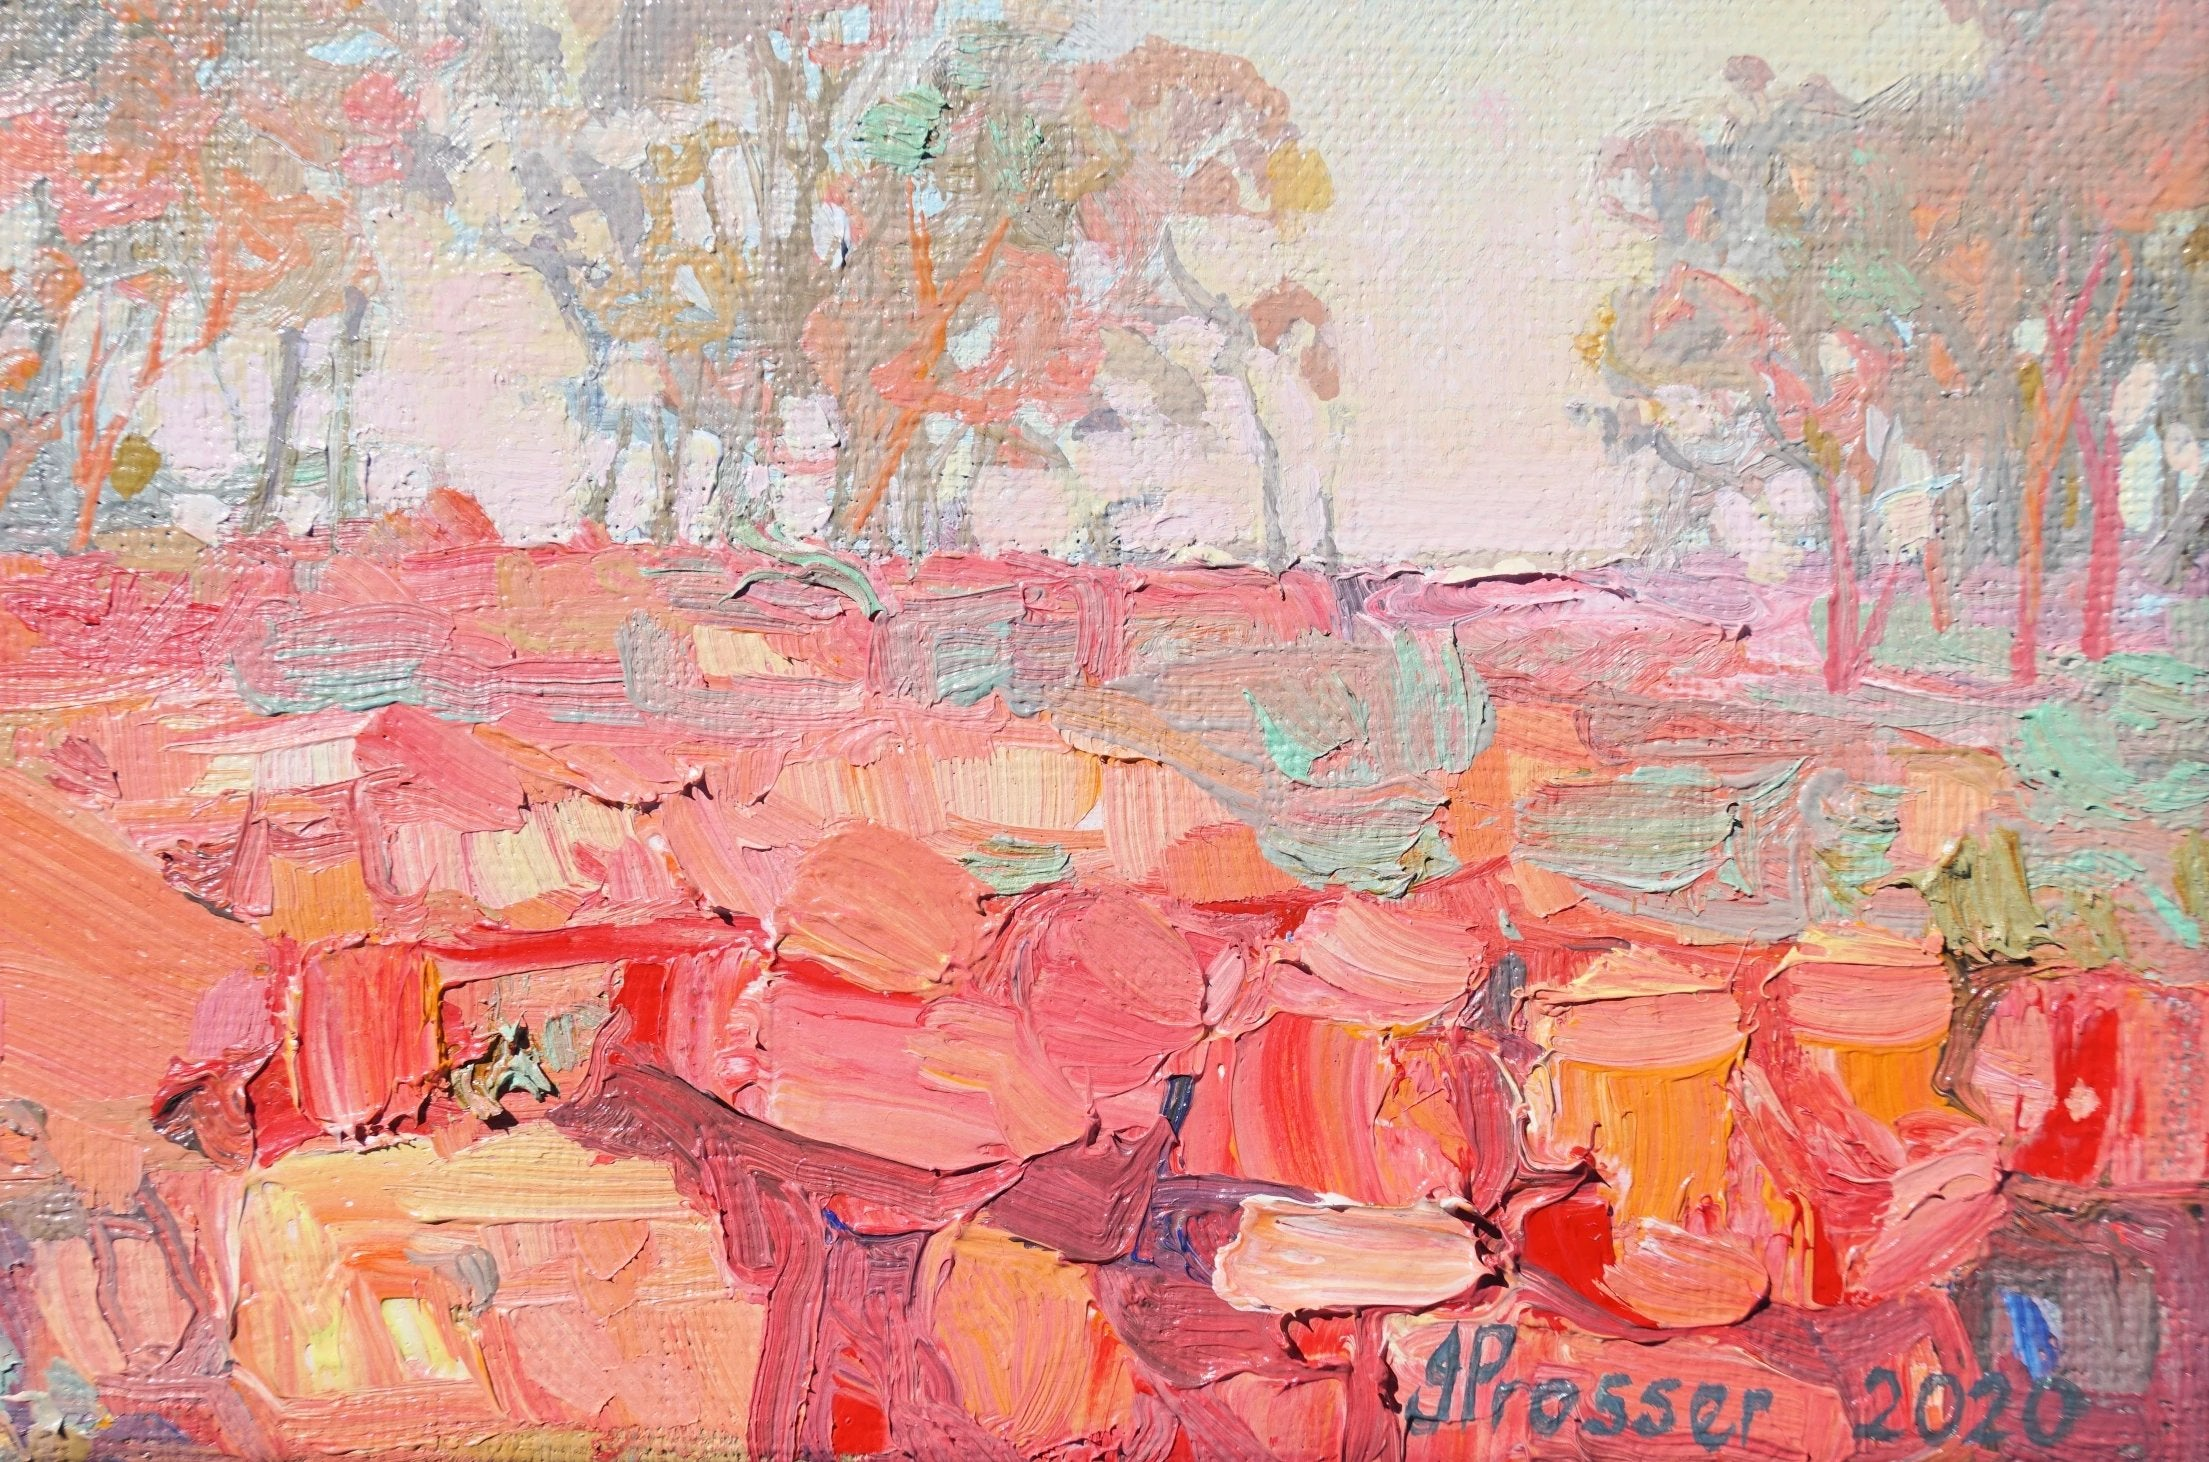 Sunset Over Outback cliffs Landscape painting by Australian artist Jaime Prosser